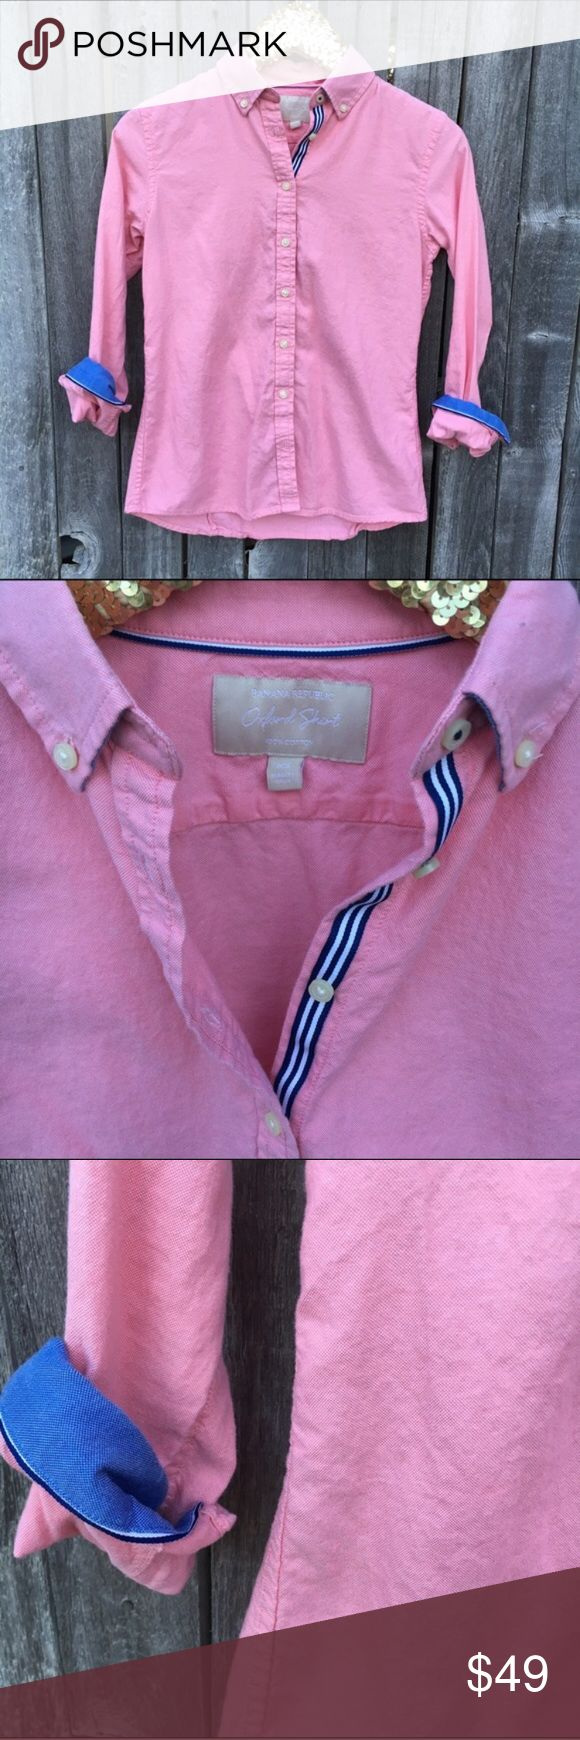 """{banana republic} Light Red Button Down Oxford XS EUC! Like new! Beautiful red Oxford. Appears light red or salmon in color. Fun Navy & White ribbon detail down inside of buttons and blue with navy cuffs for chic flare. Classic, casual or dressy. All American Woman! 🇺🇸 17"""" pit to pit, 25"""" shoulder to hem length, 23"""" sleeves. 100% Cotton. Offers warmly welcomed! Banana Republic Tops Button Down Shirts"""